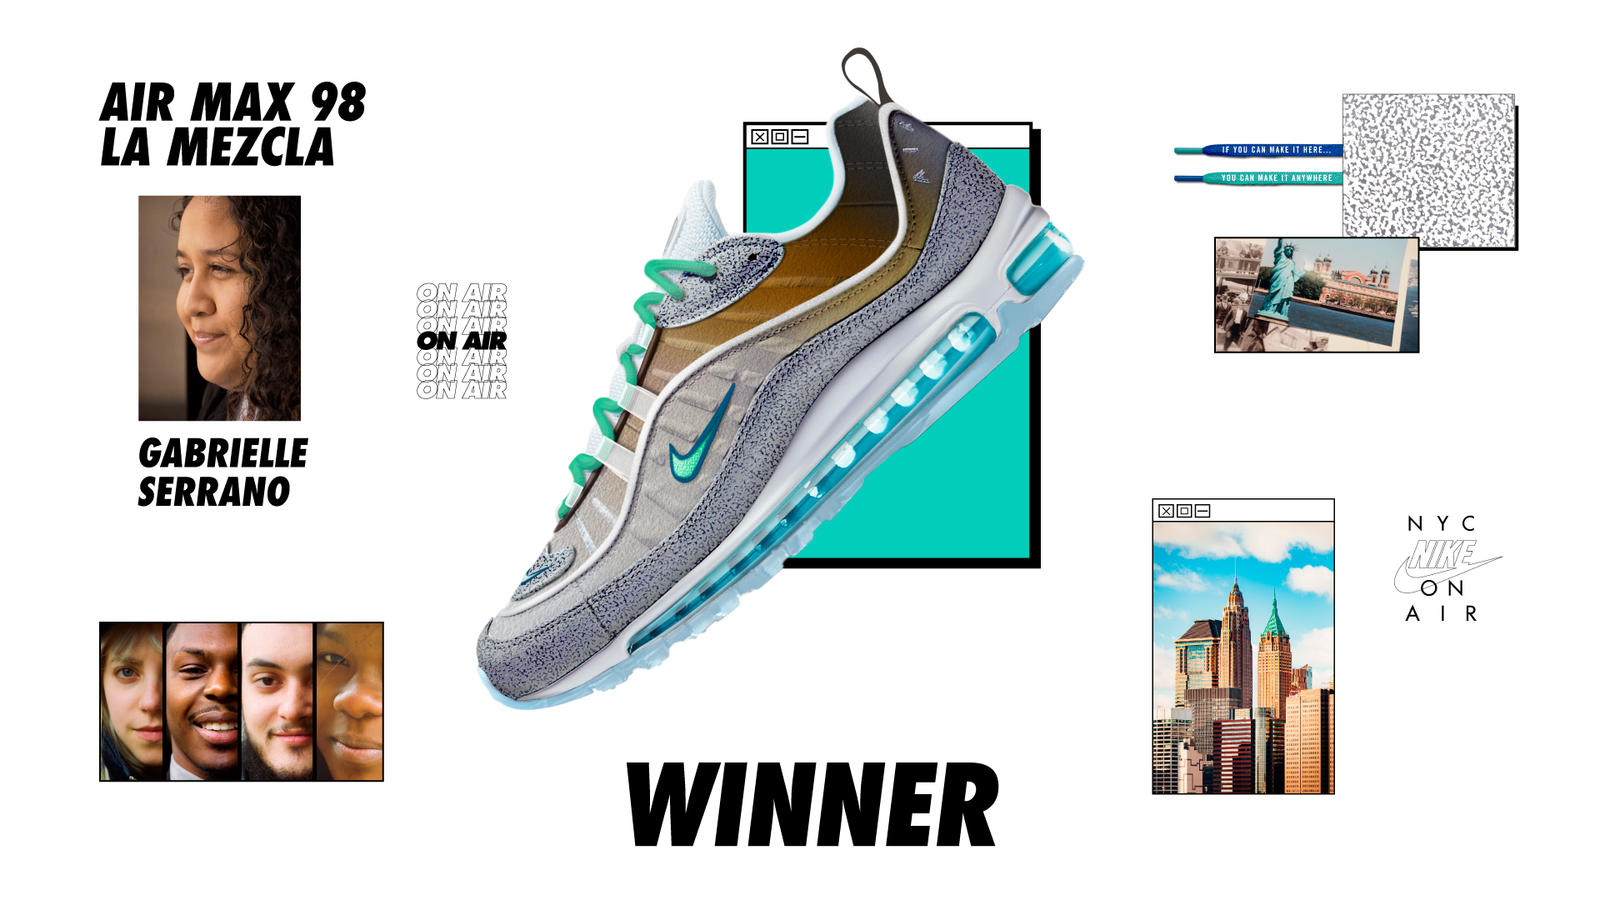 99a588b4c30 Here are the Final Designs of the Nike  On Air Winners - Nike News